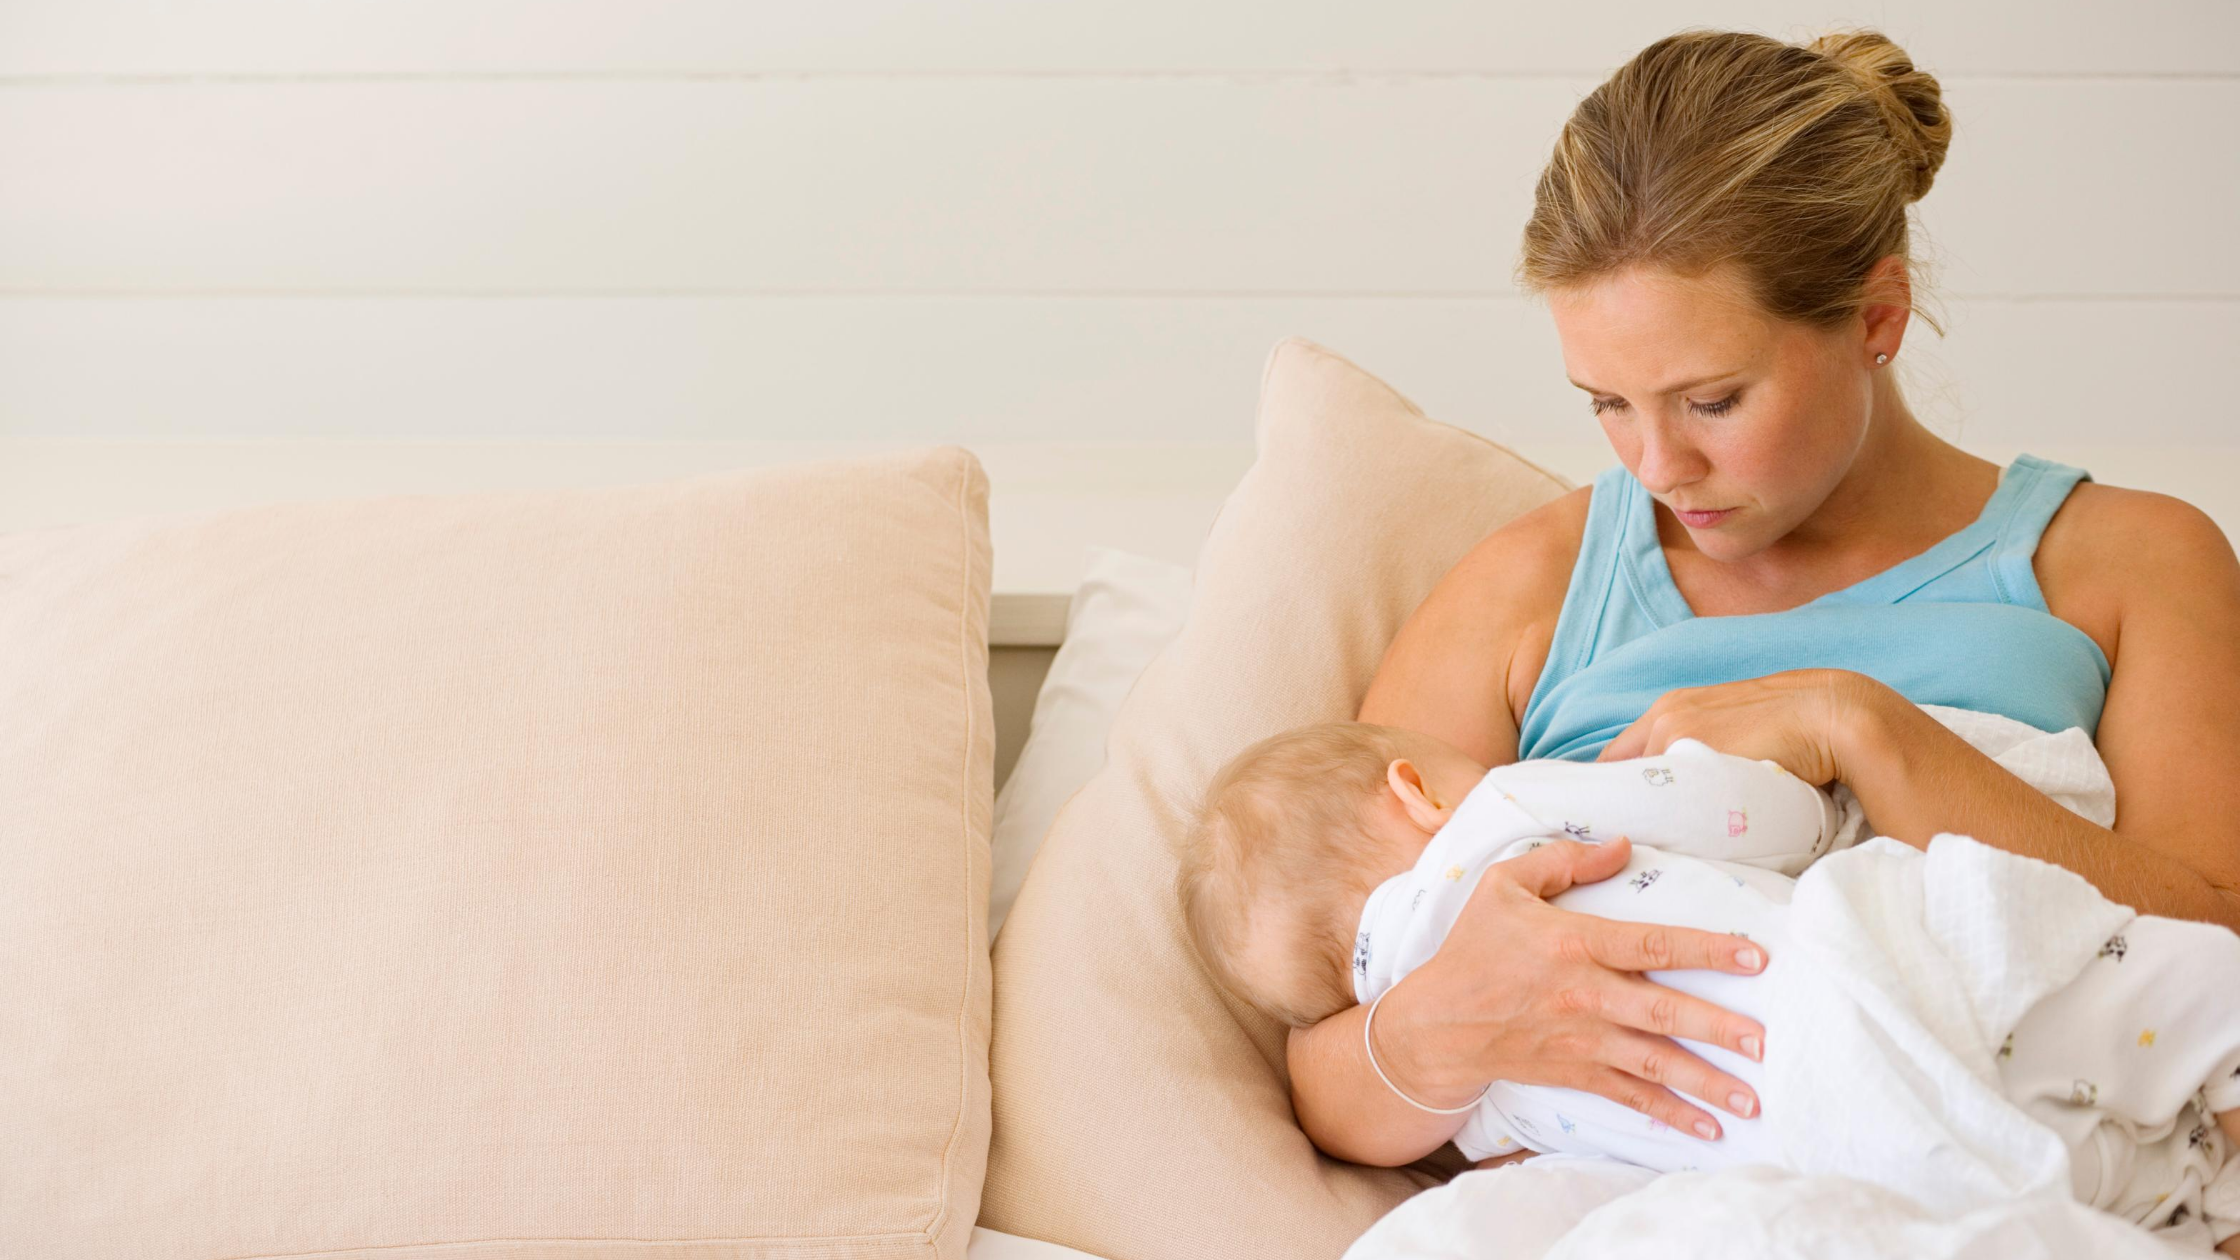 a mom breastfeeding a baby on the couch